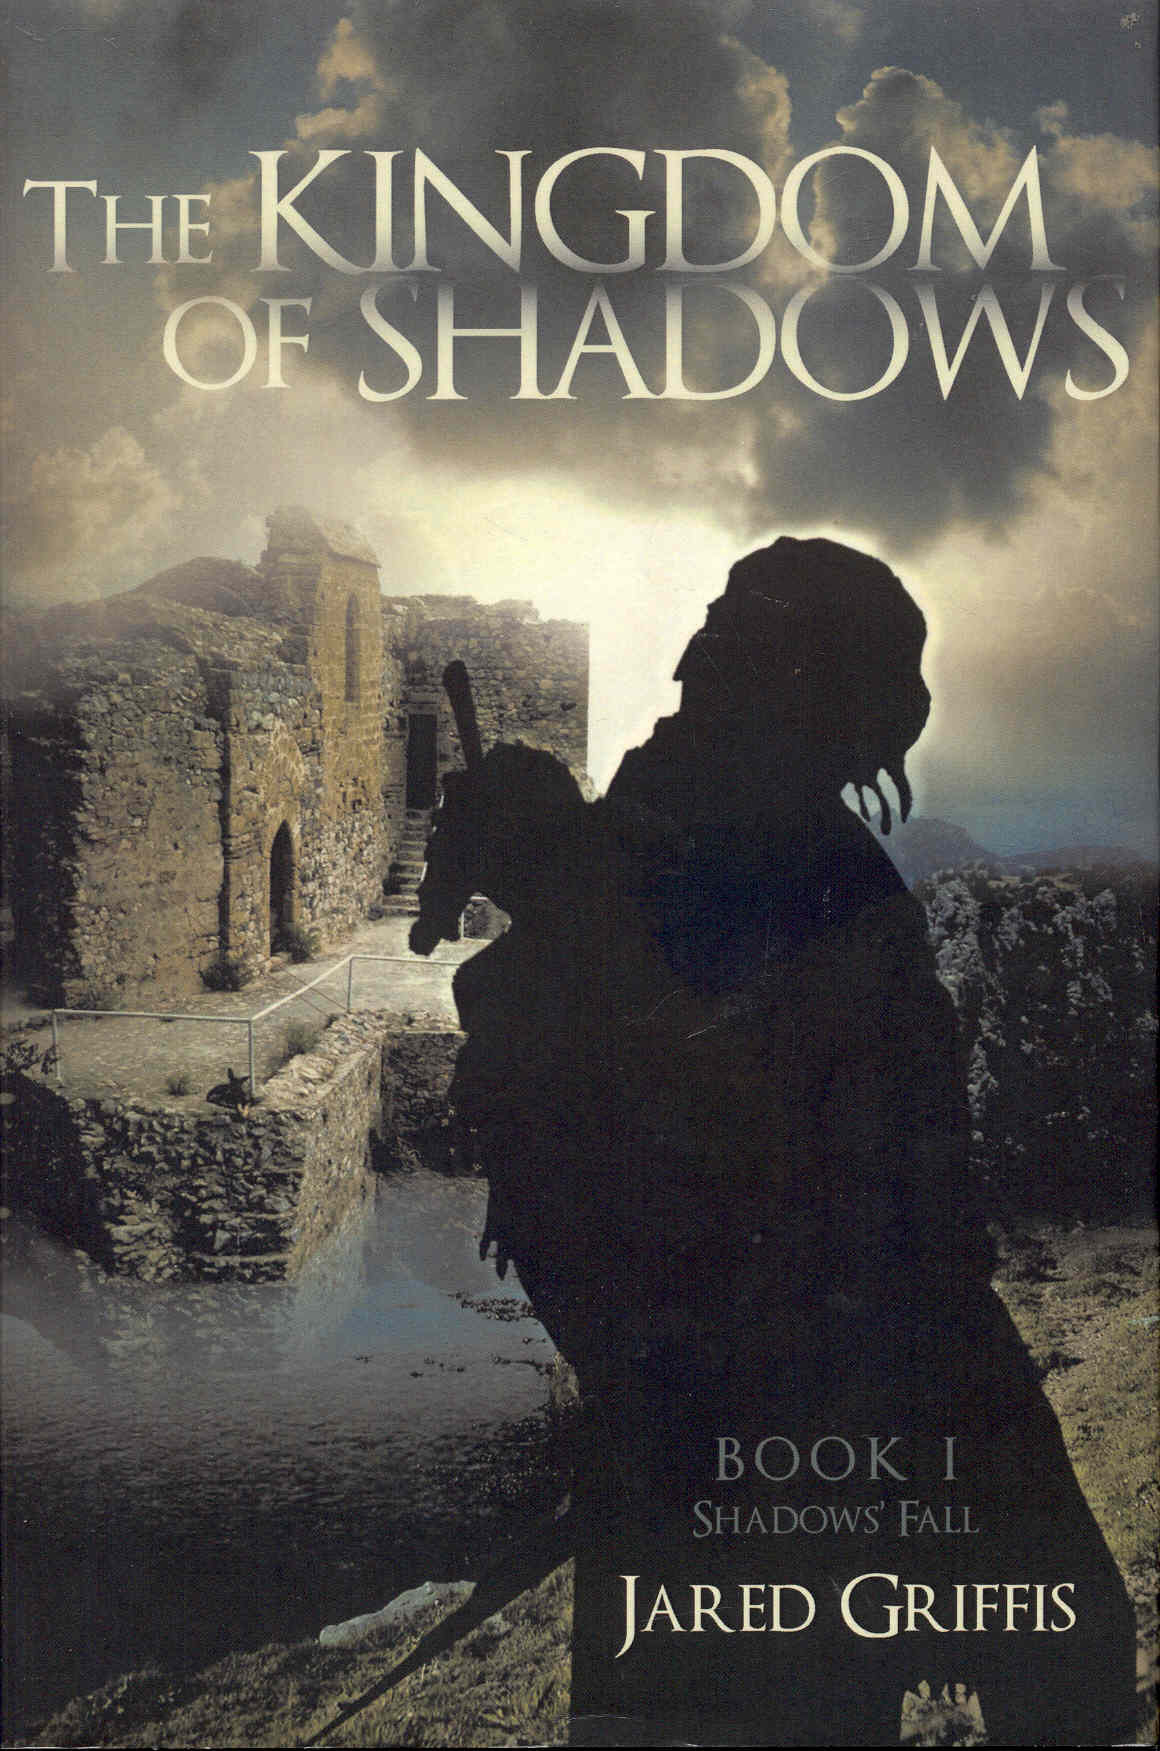 Image for The Kingdom of Shadows (Shadows' Fall, Book 1)